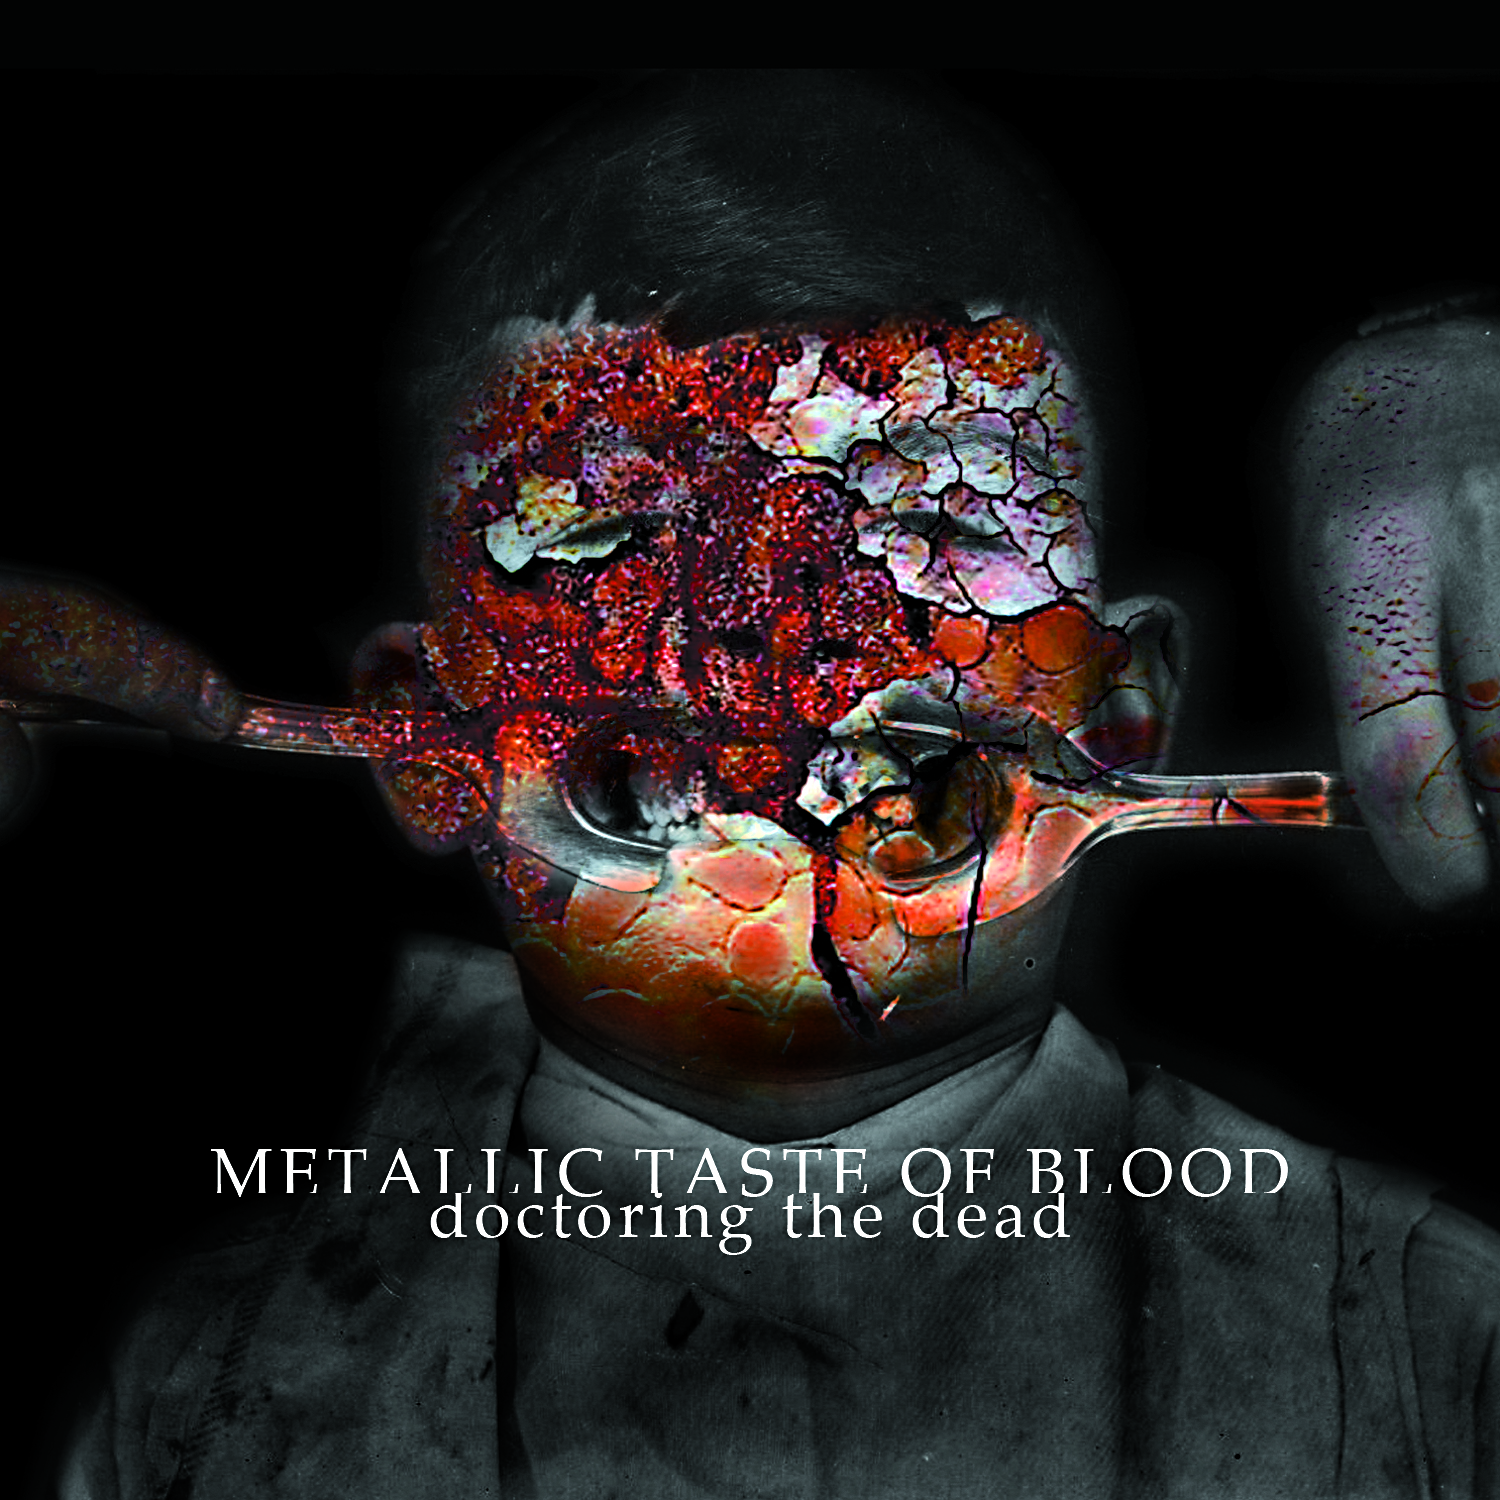 Metallic Taste Of Blood: Doctoring the Dead